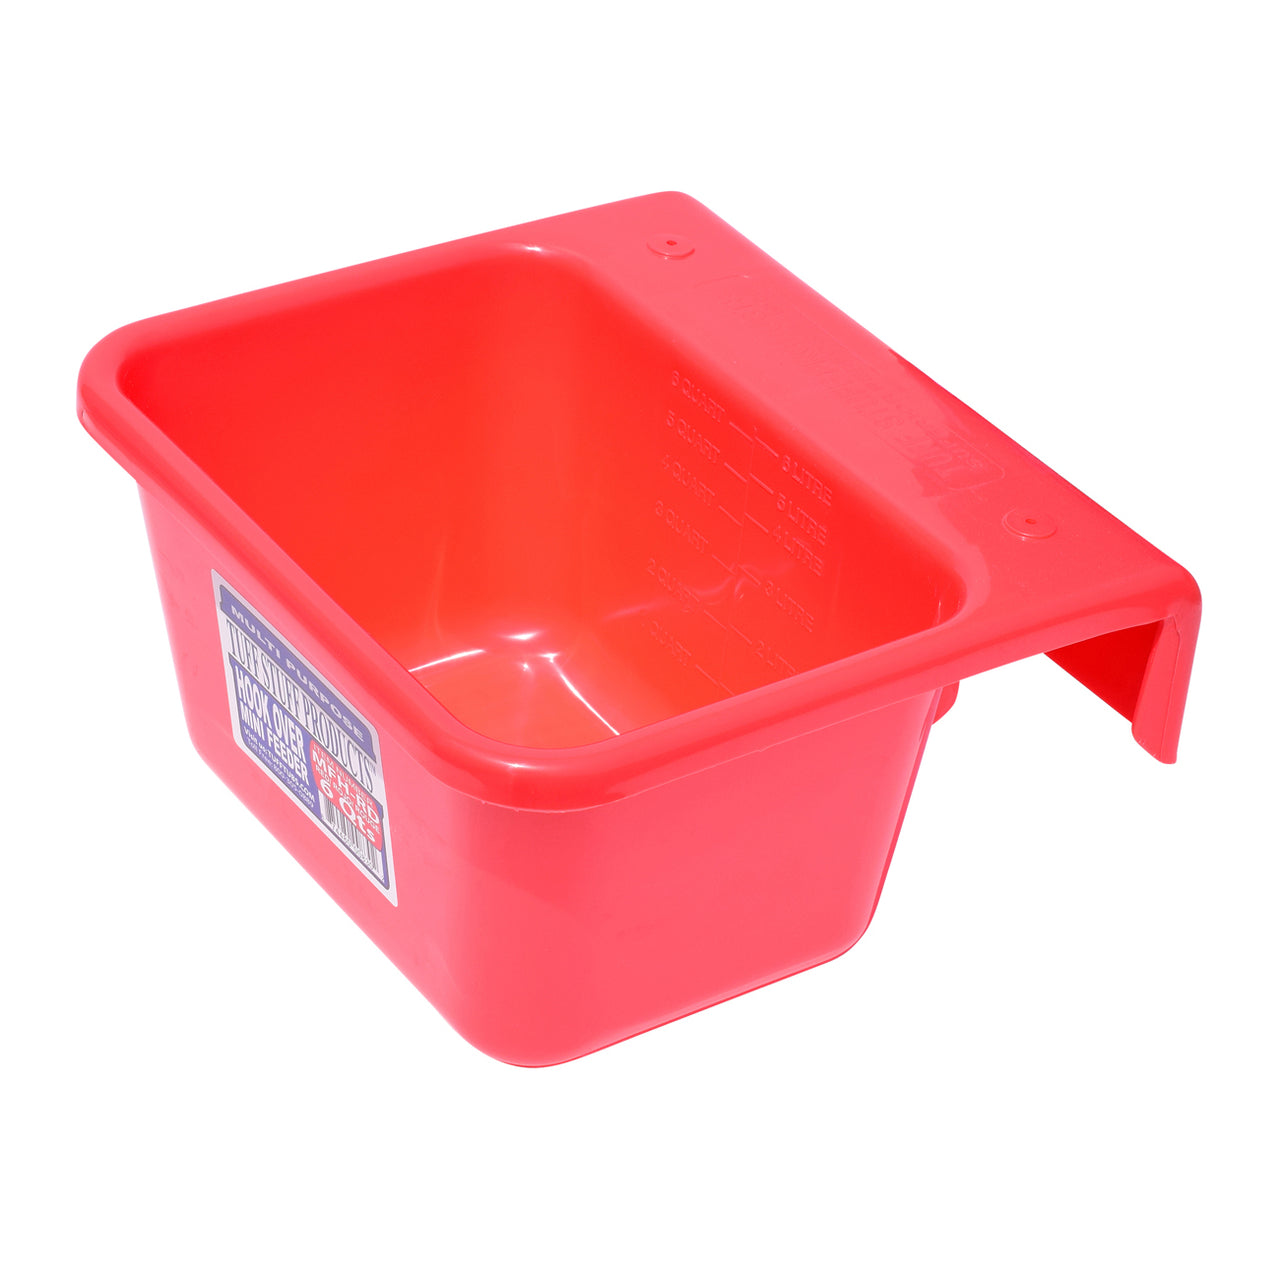 Tuff Stuff Mini Hook Over Feeder - Red - Buckets Pails Feeders Scoops Tubs Bottles Tuff Stuff - Canada